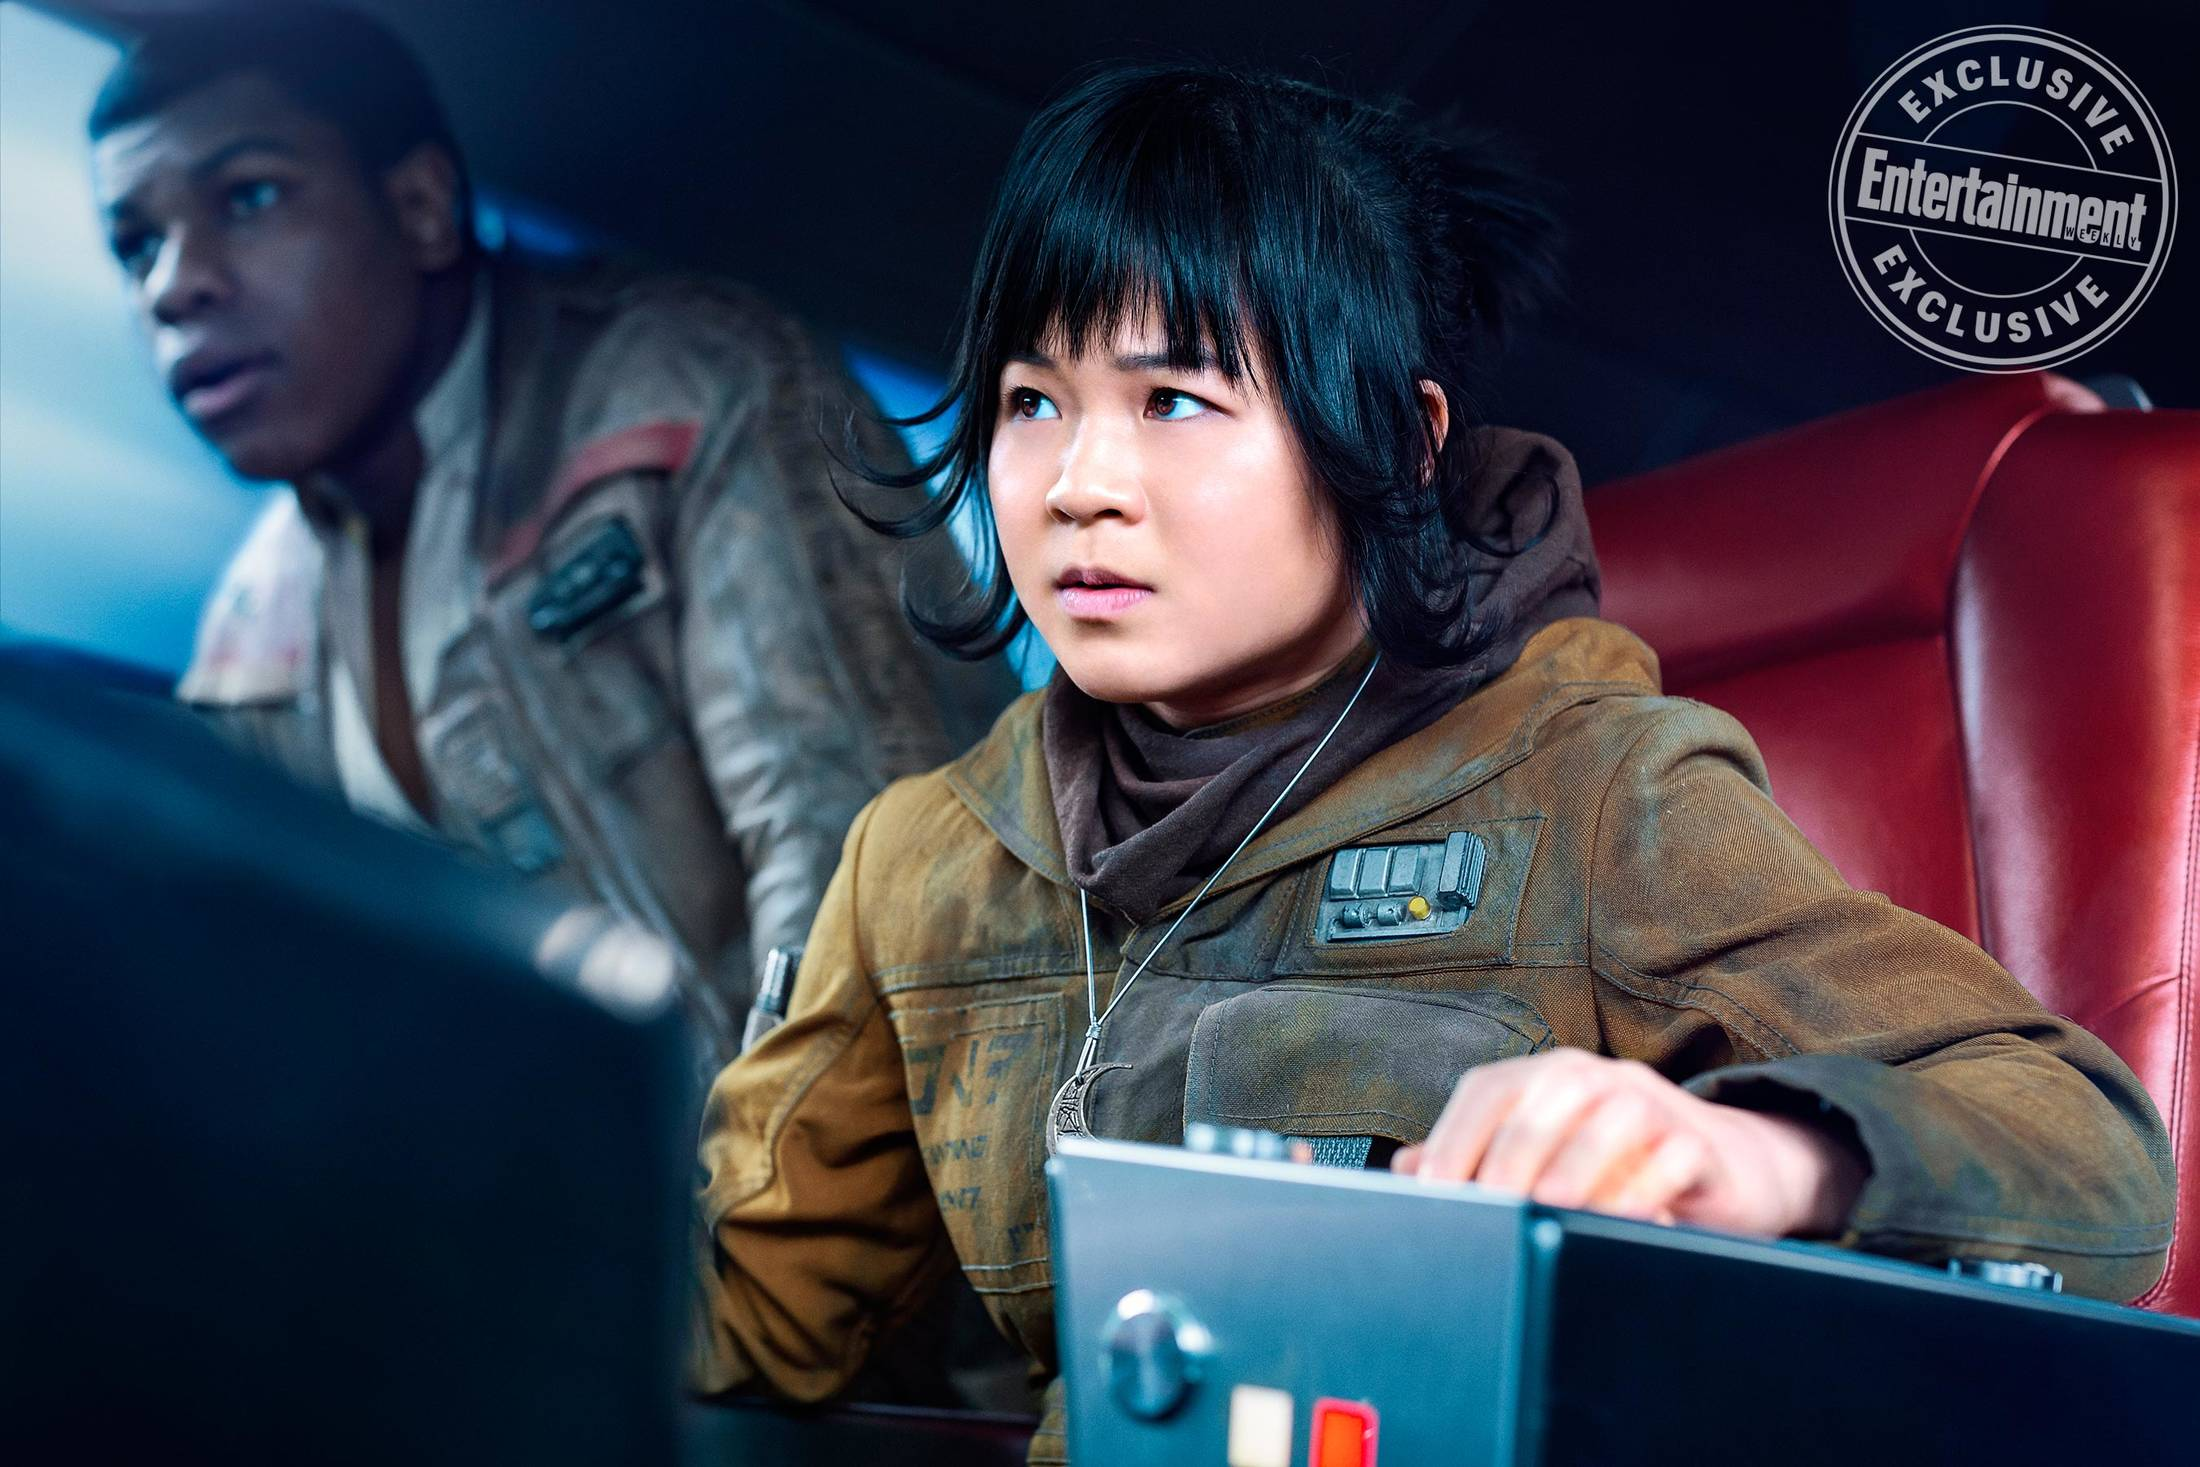 A photo from The Last Jedi of Rose Tico wearing her half-moon necklace